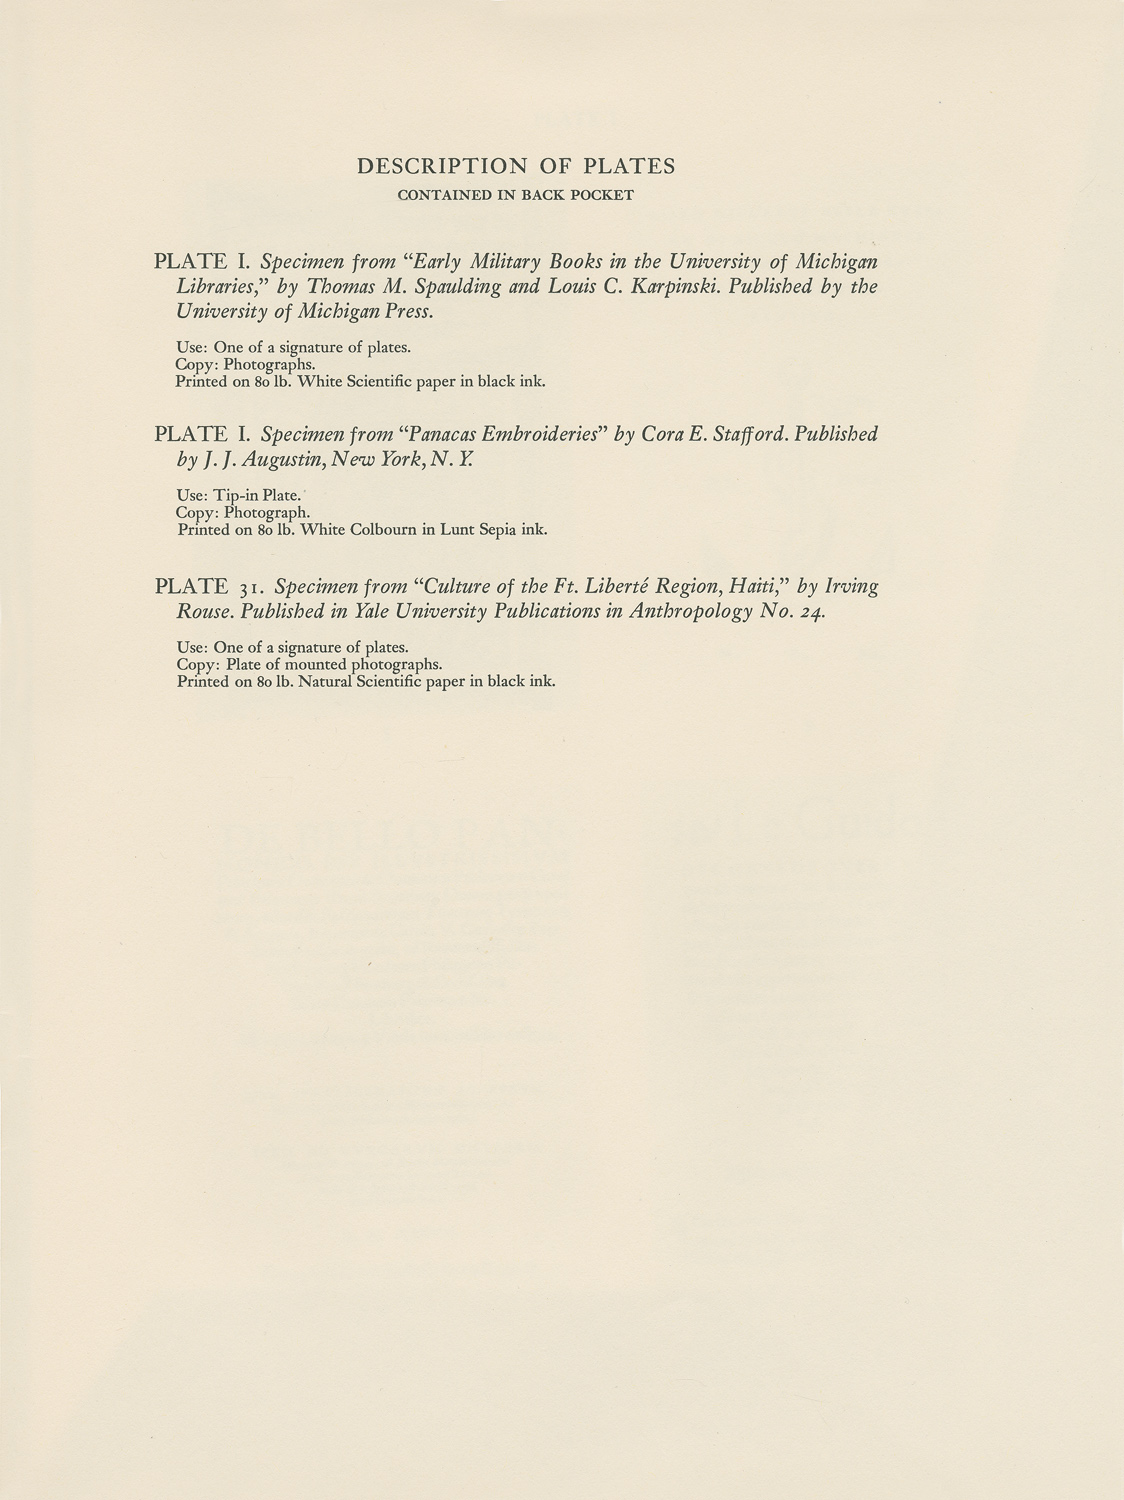 Descriptions of plates-Supplement No. 15.jpg